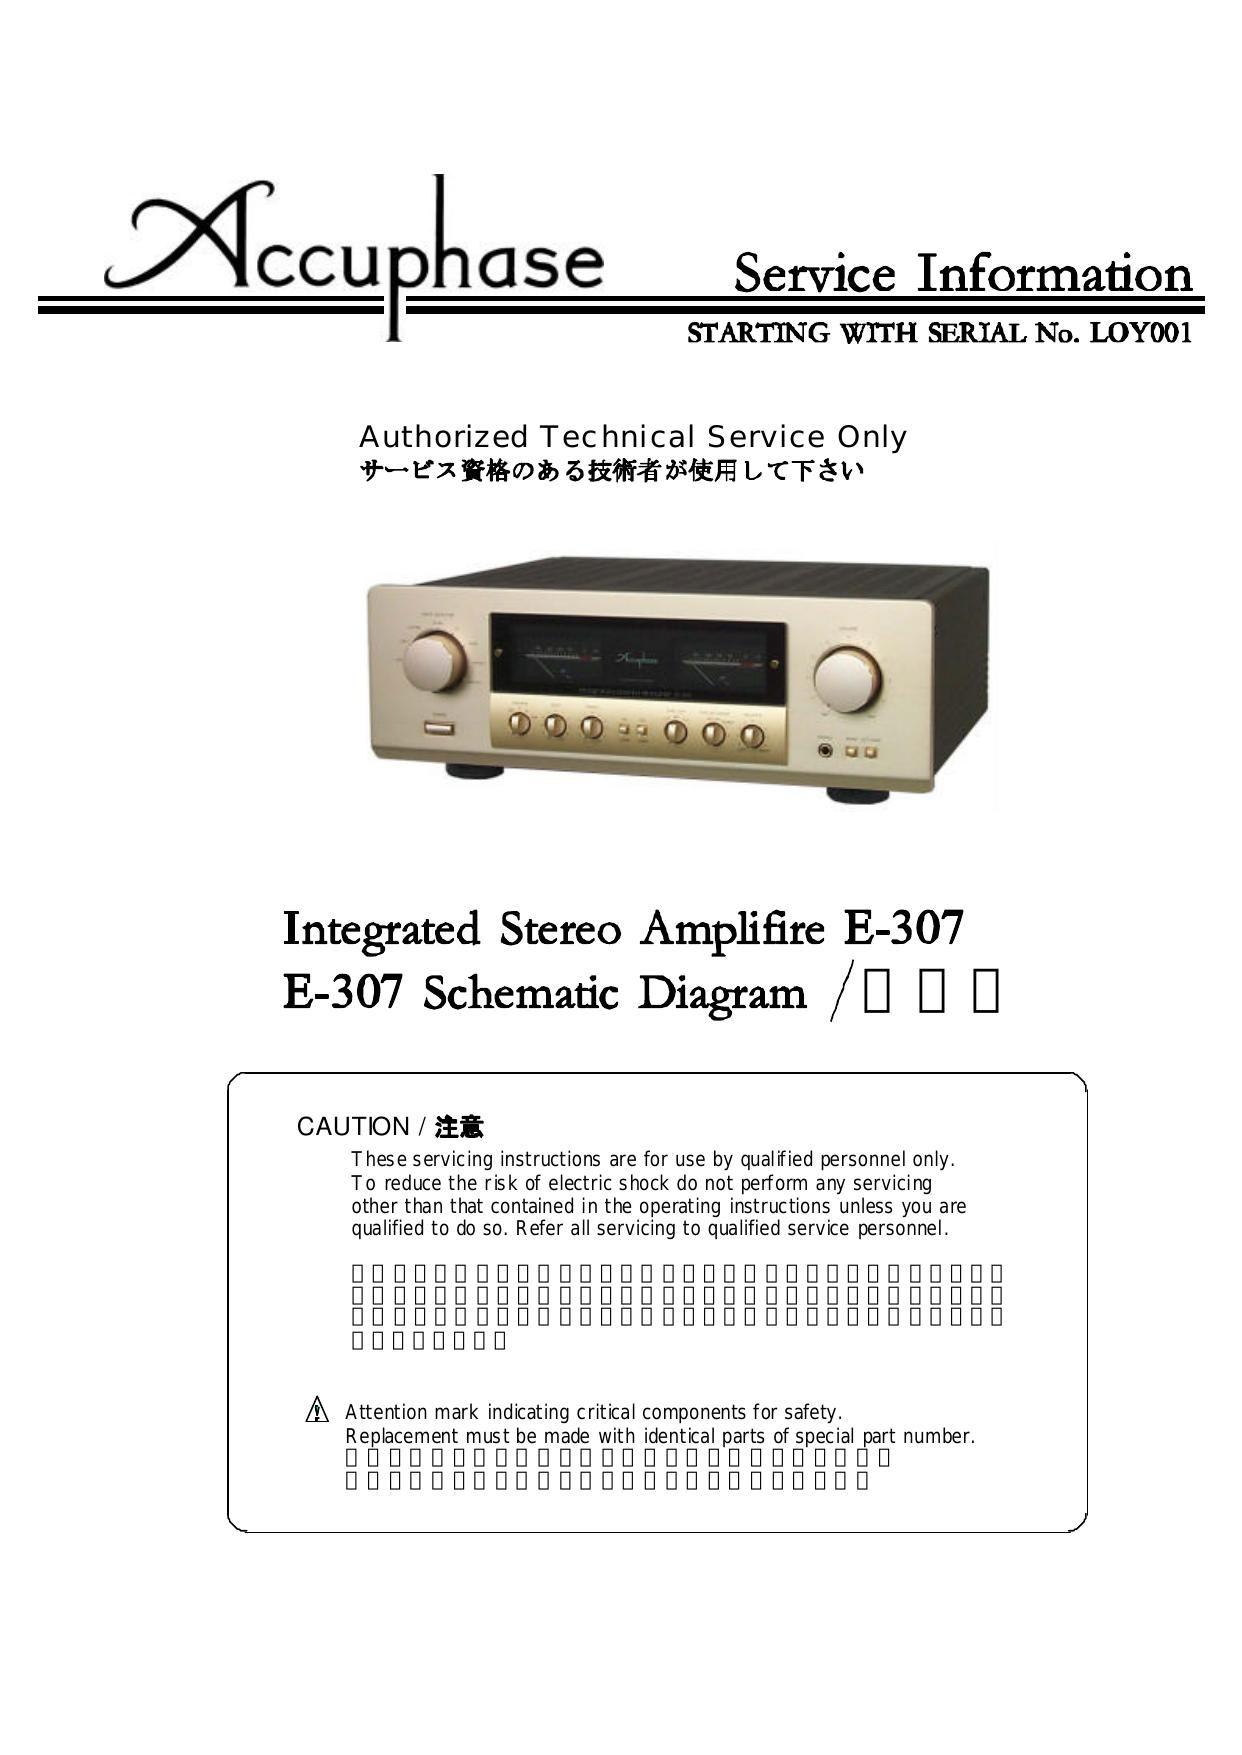 accuphase e 307 service manual rh audioservicemanuals com accuphase a60 service manual accuphase a70 service manual